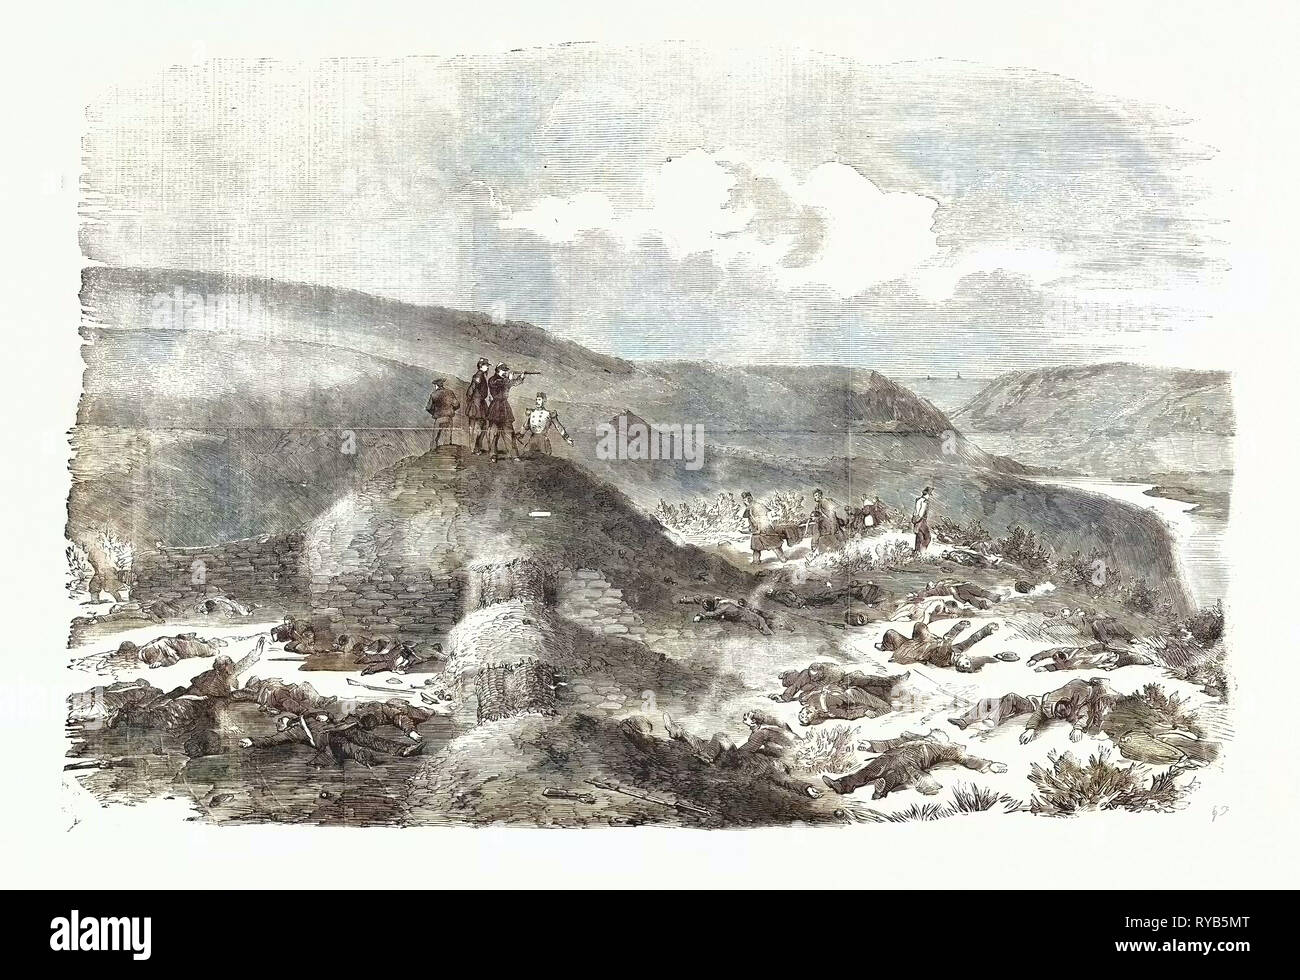 The Crimean War: Sandbag Battery Defended by the Guards on the Morning after the Battle of Inkerman 1854 - Stock Image